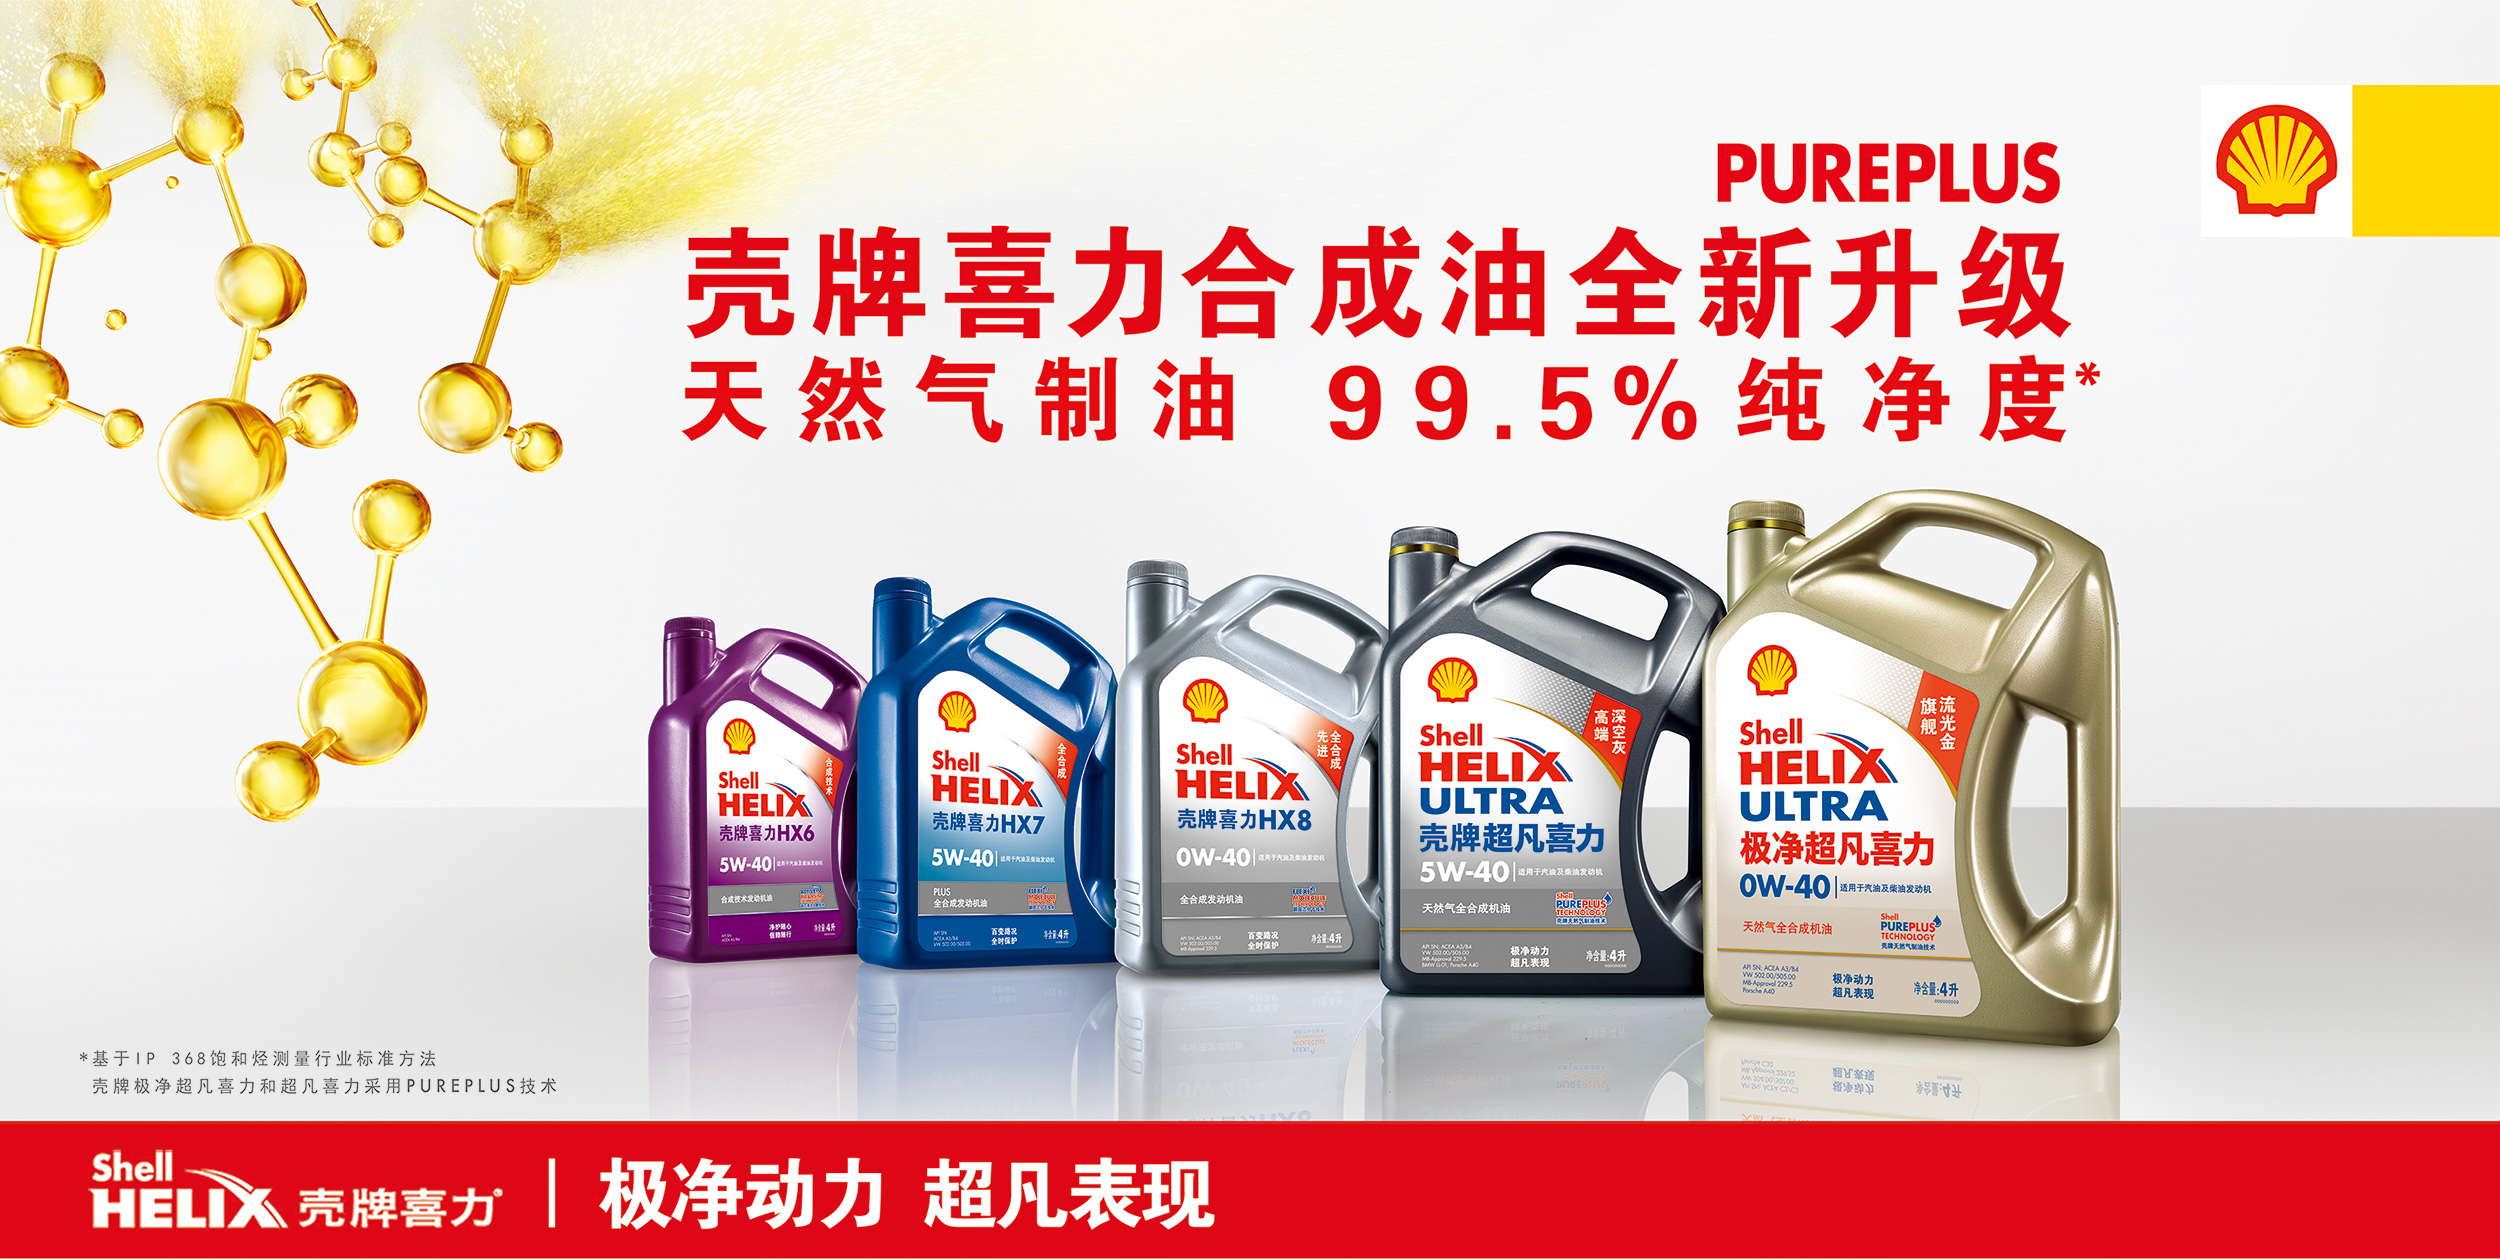 Shell_Product_Family_H